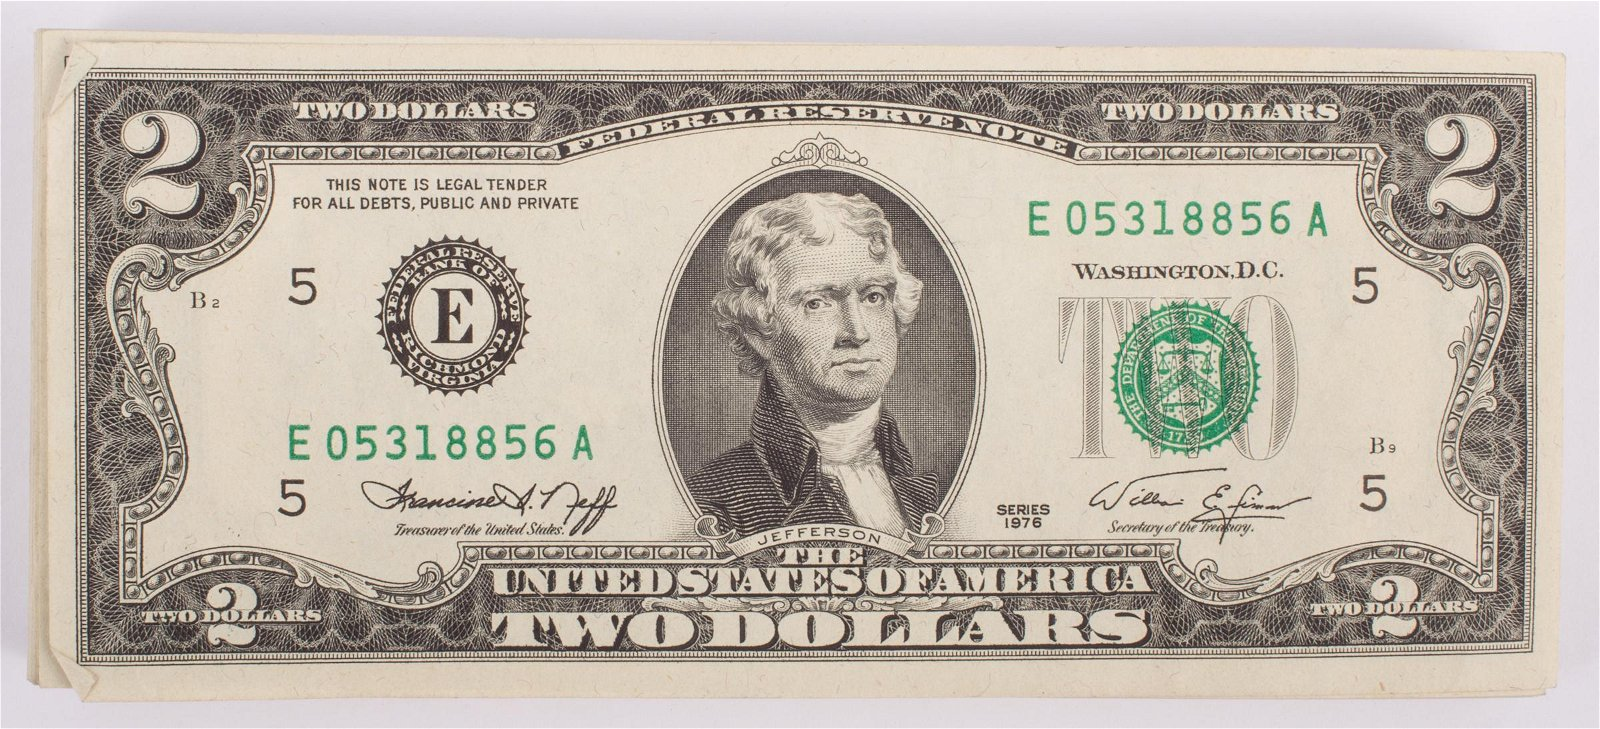 $2 FEDERAL RESERVE NOTES - SEQUENTIAL (100)